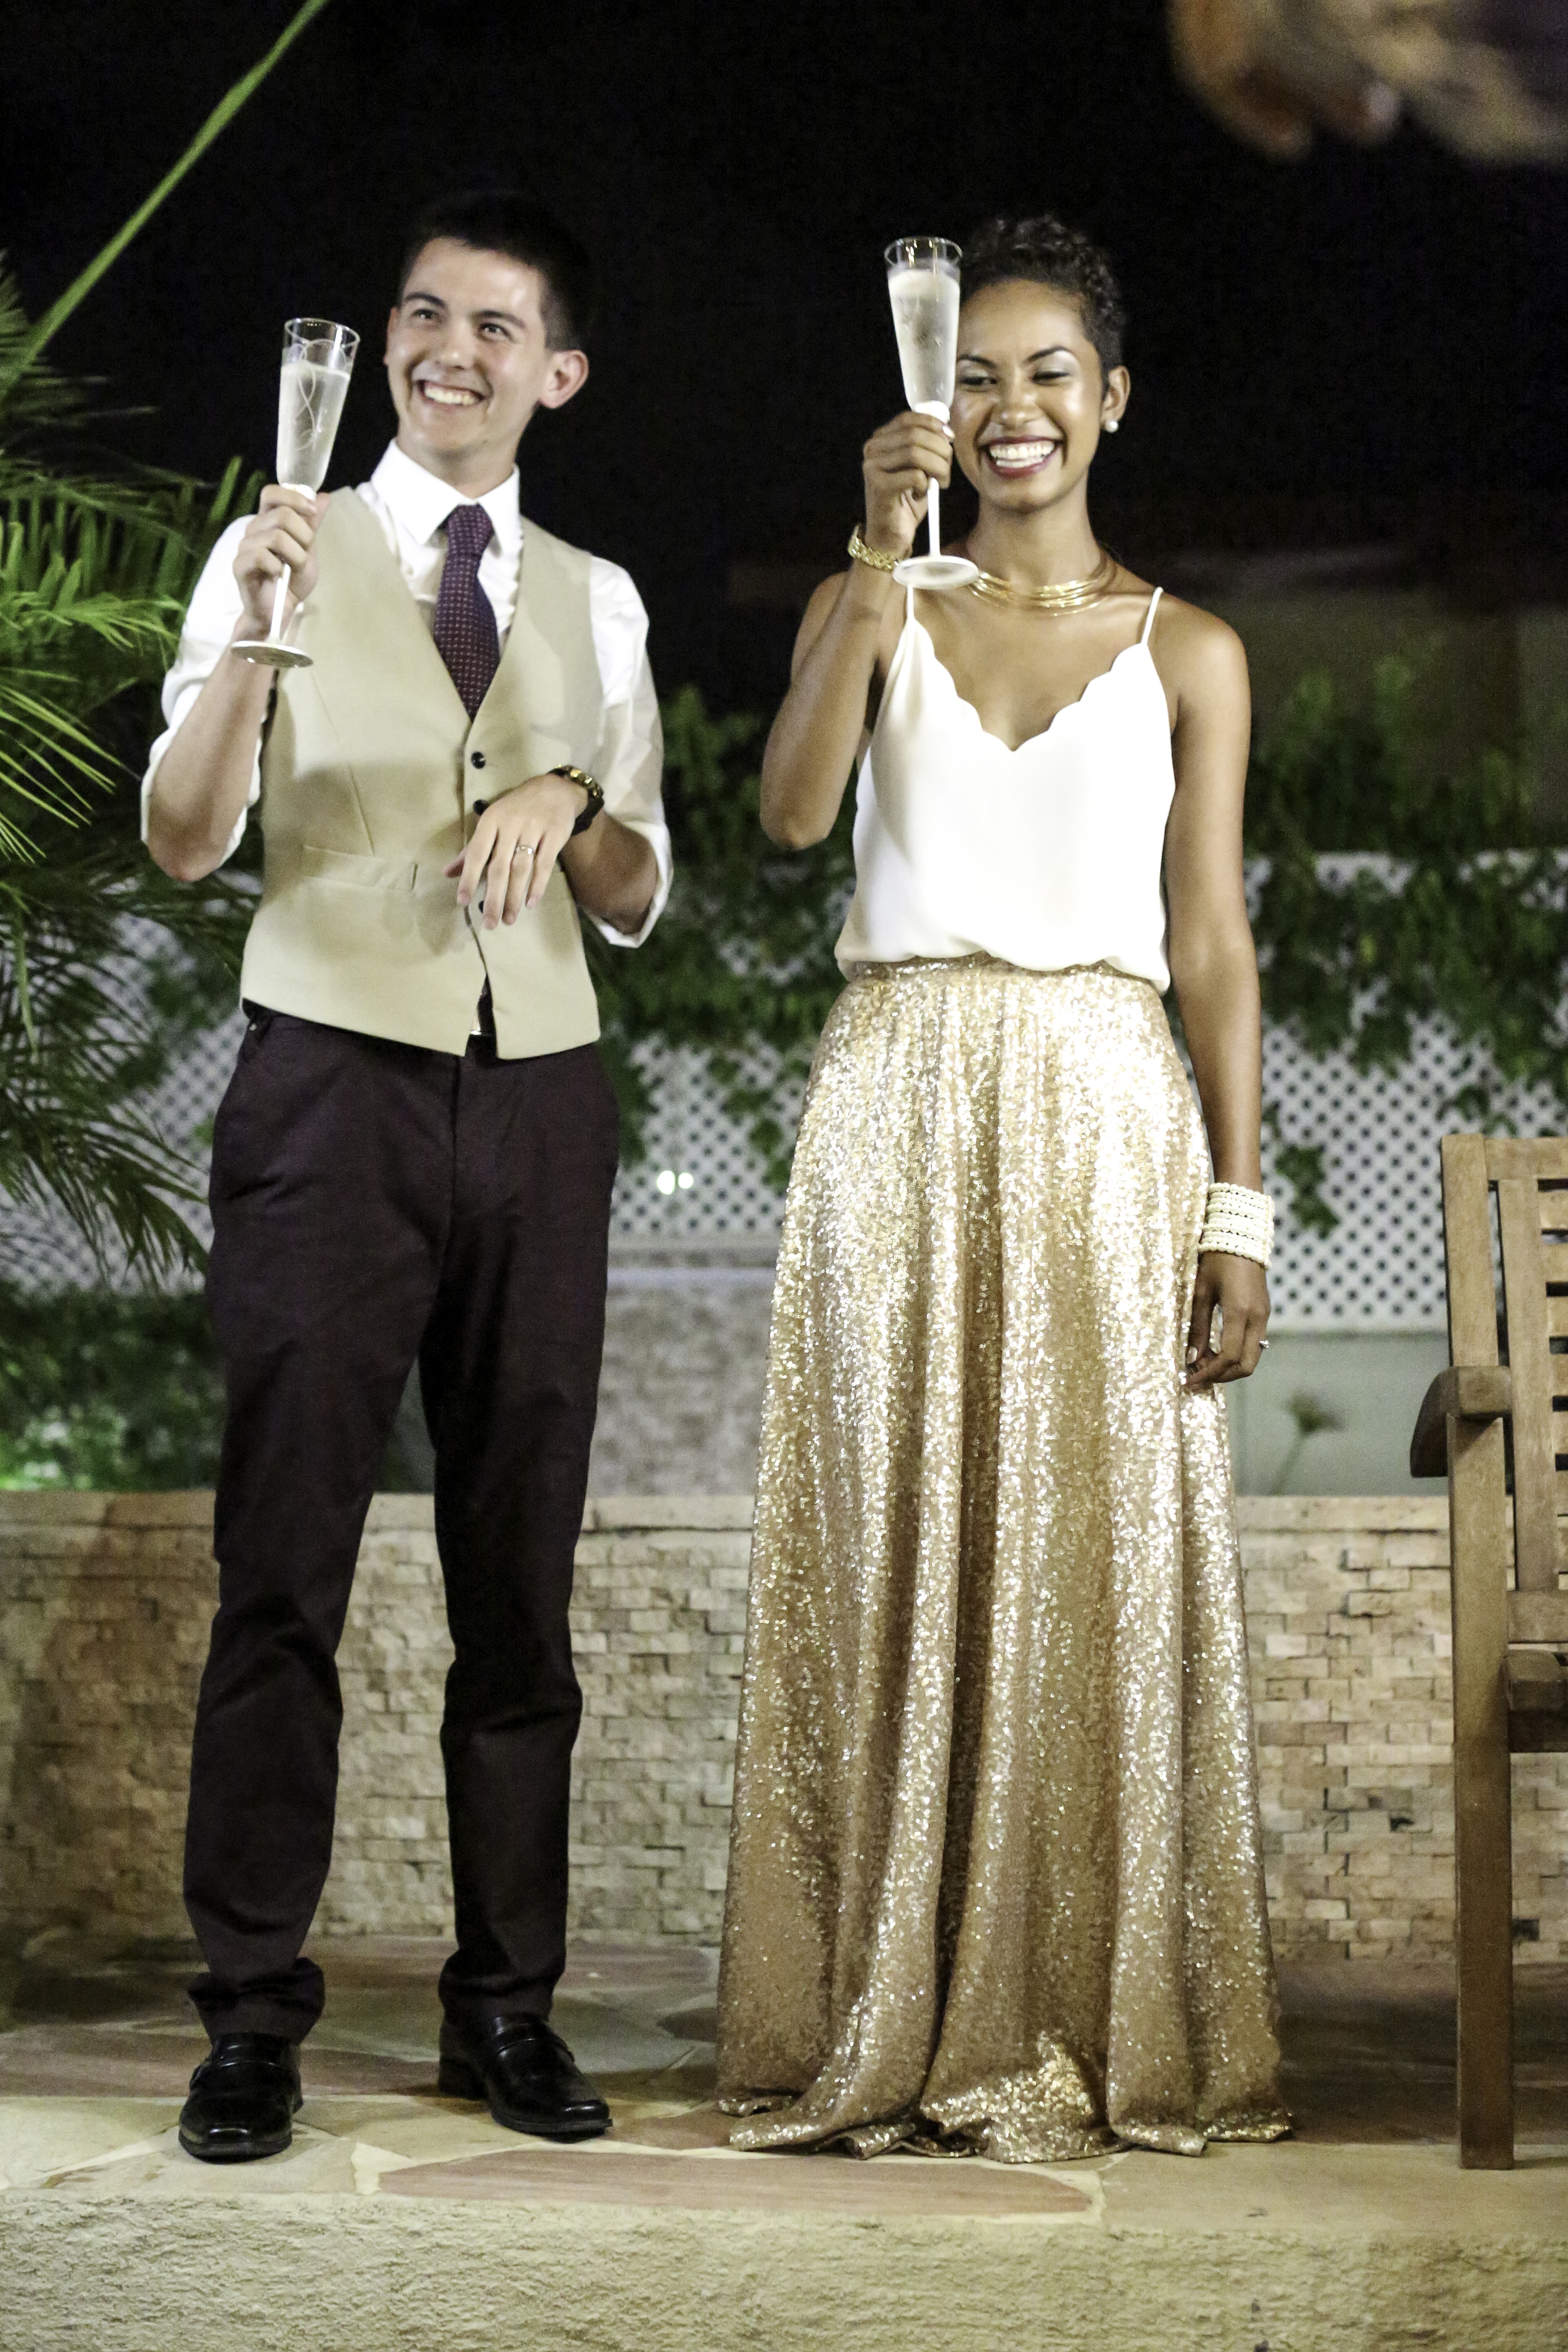 Corinnes May Wedding Reception Gathering Preview_-7.jpg